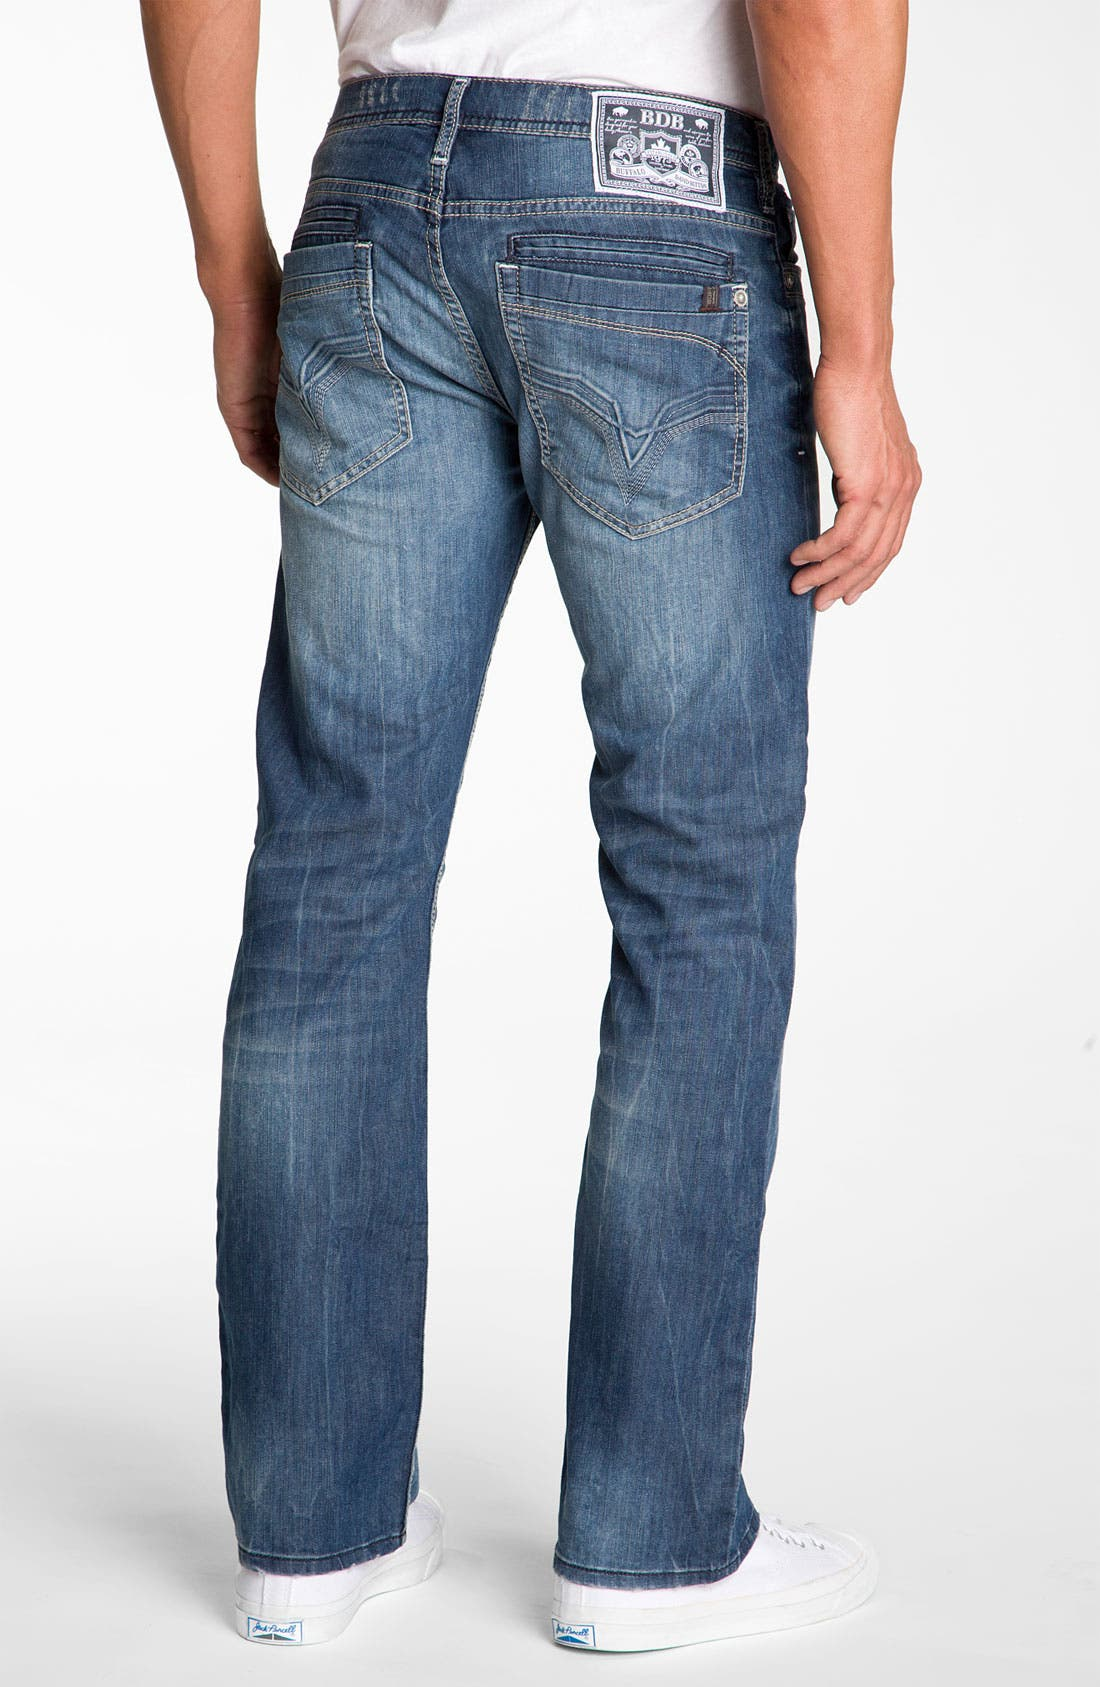 Main Image - Buffalo Jeans 'Dixel' Straight Leg Jeans (Aged & Distressed Wash)